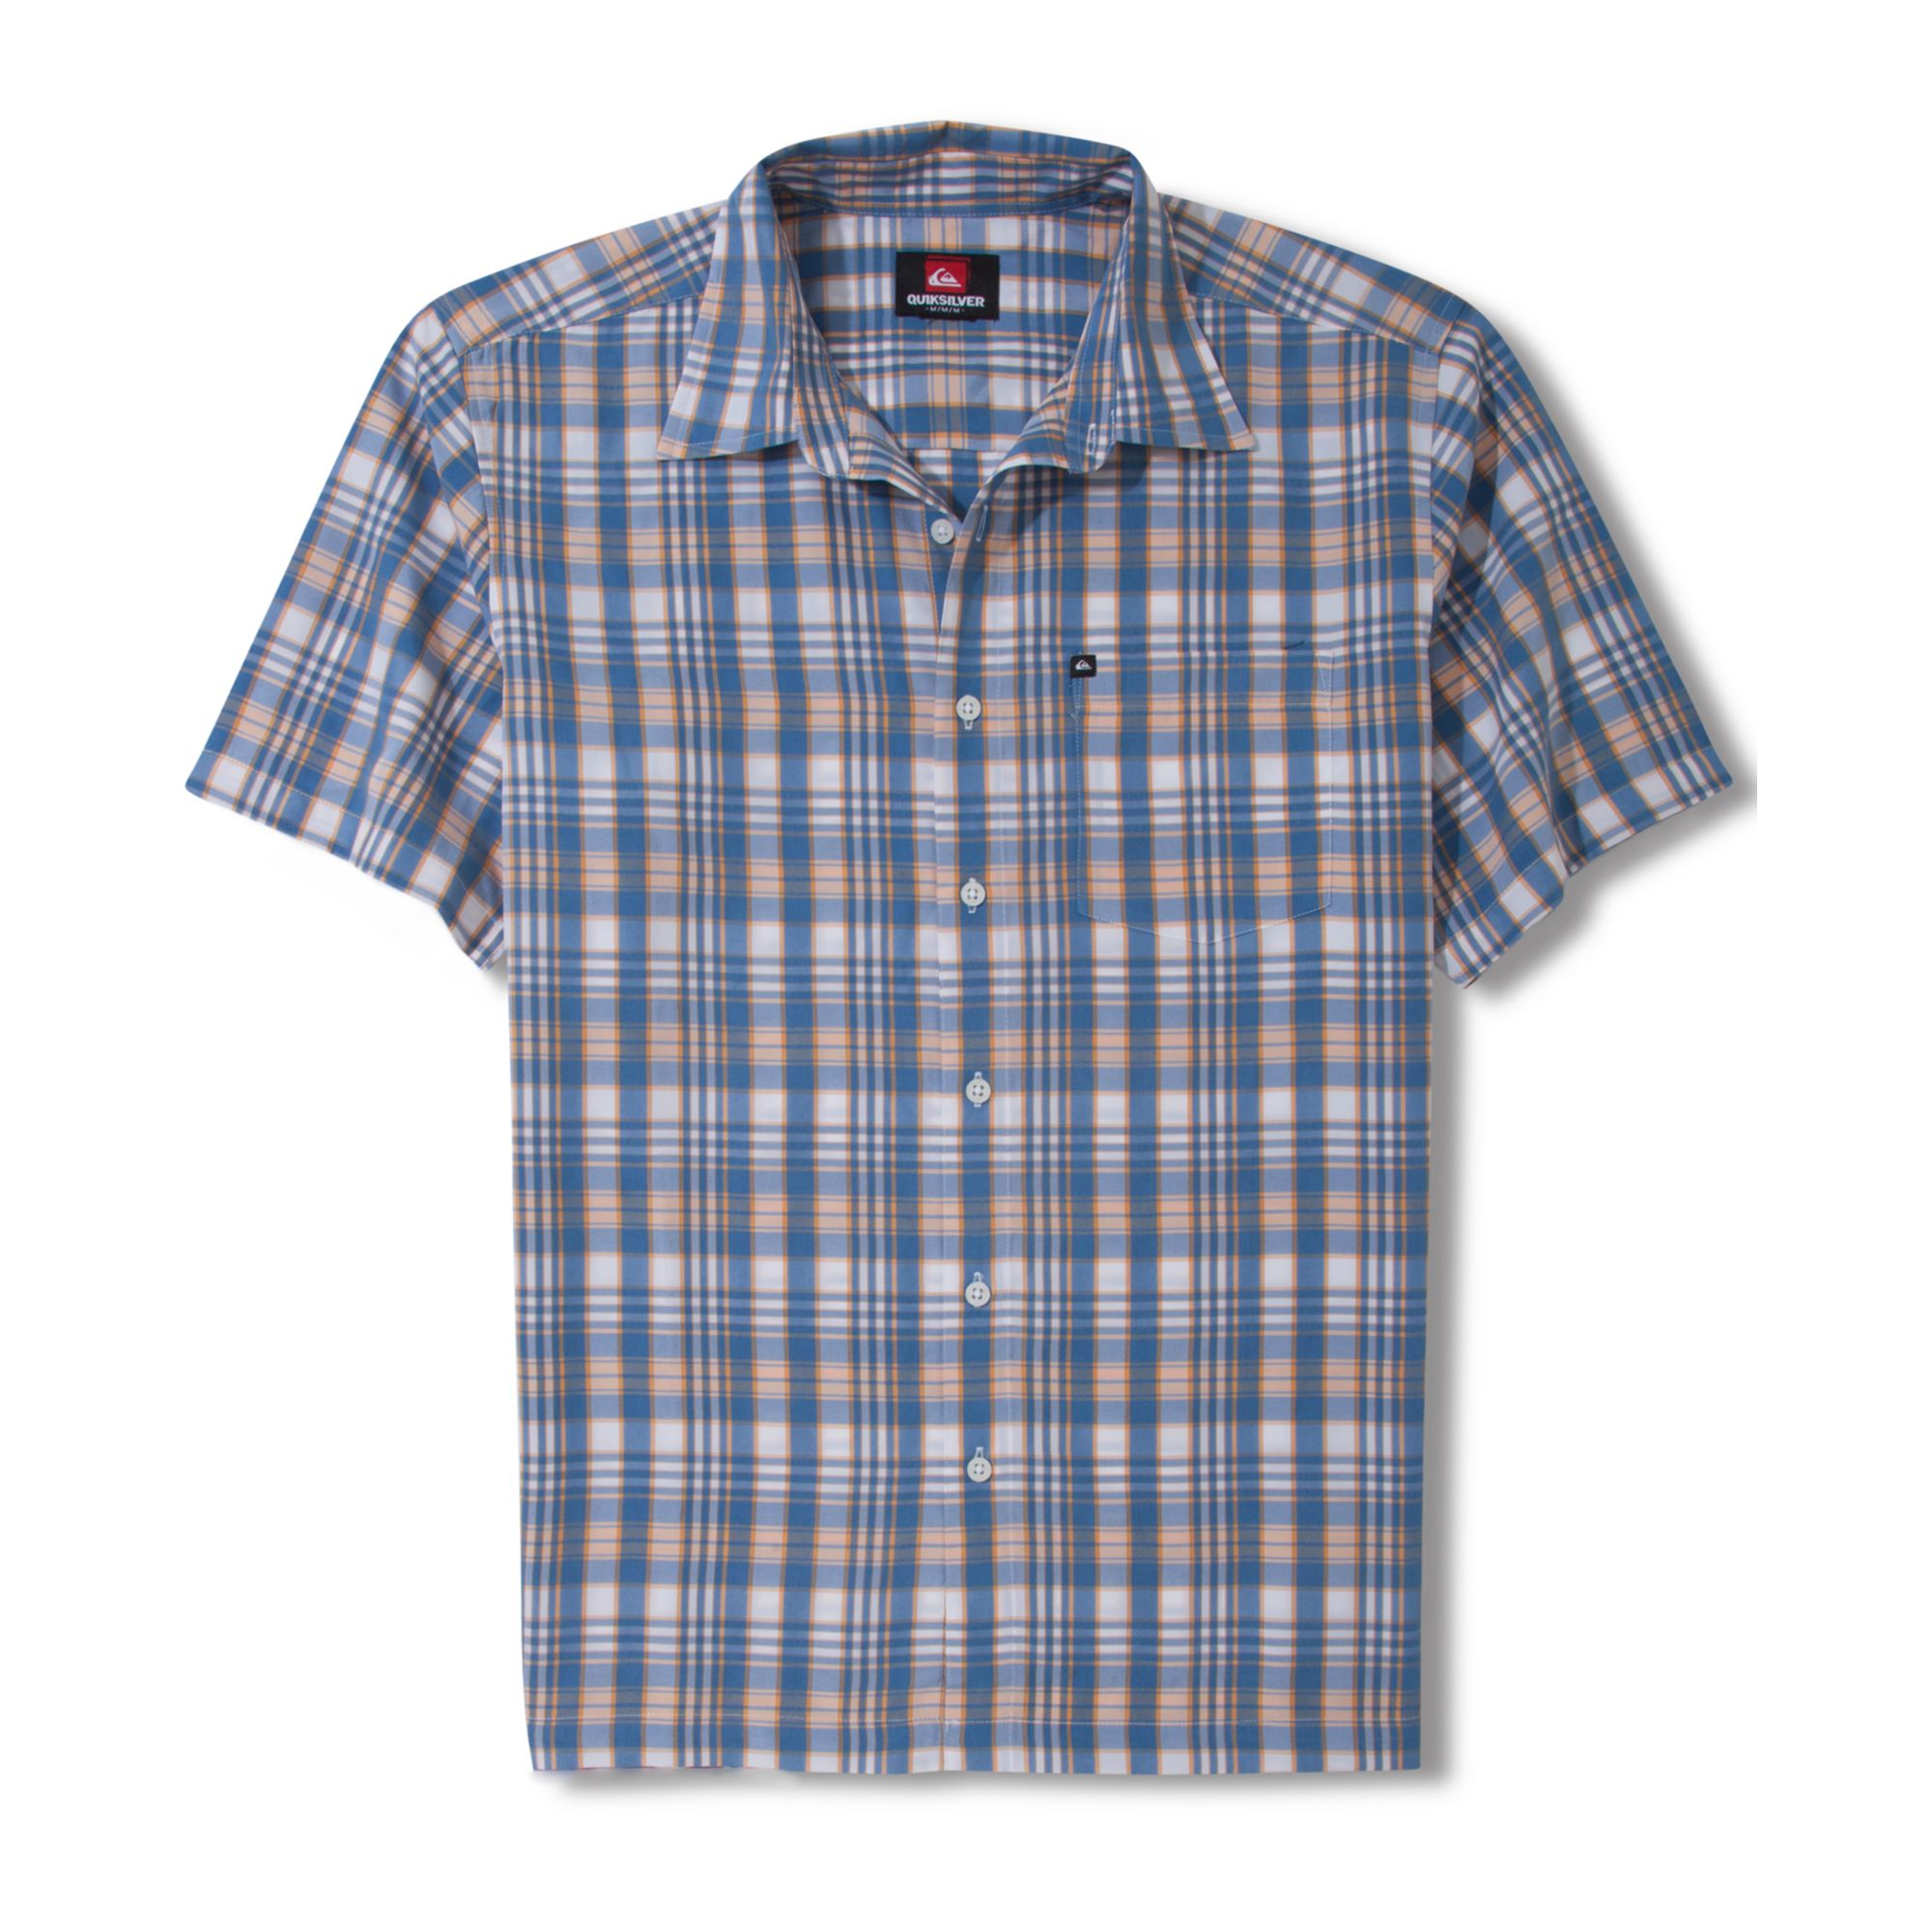 Quiksilver anchor rope short sleeve plaid shirt in blue Short sleeve plaid shirts